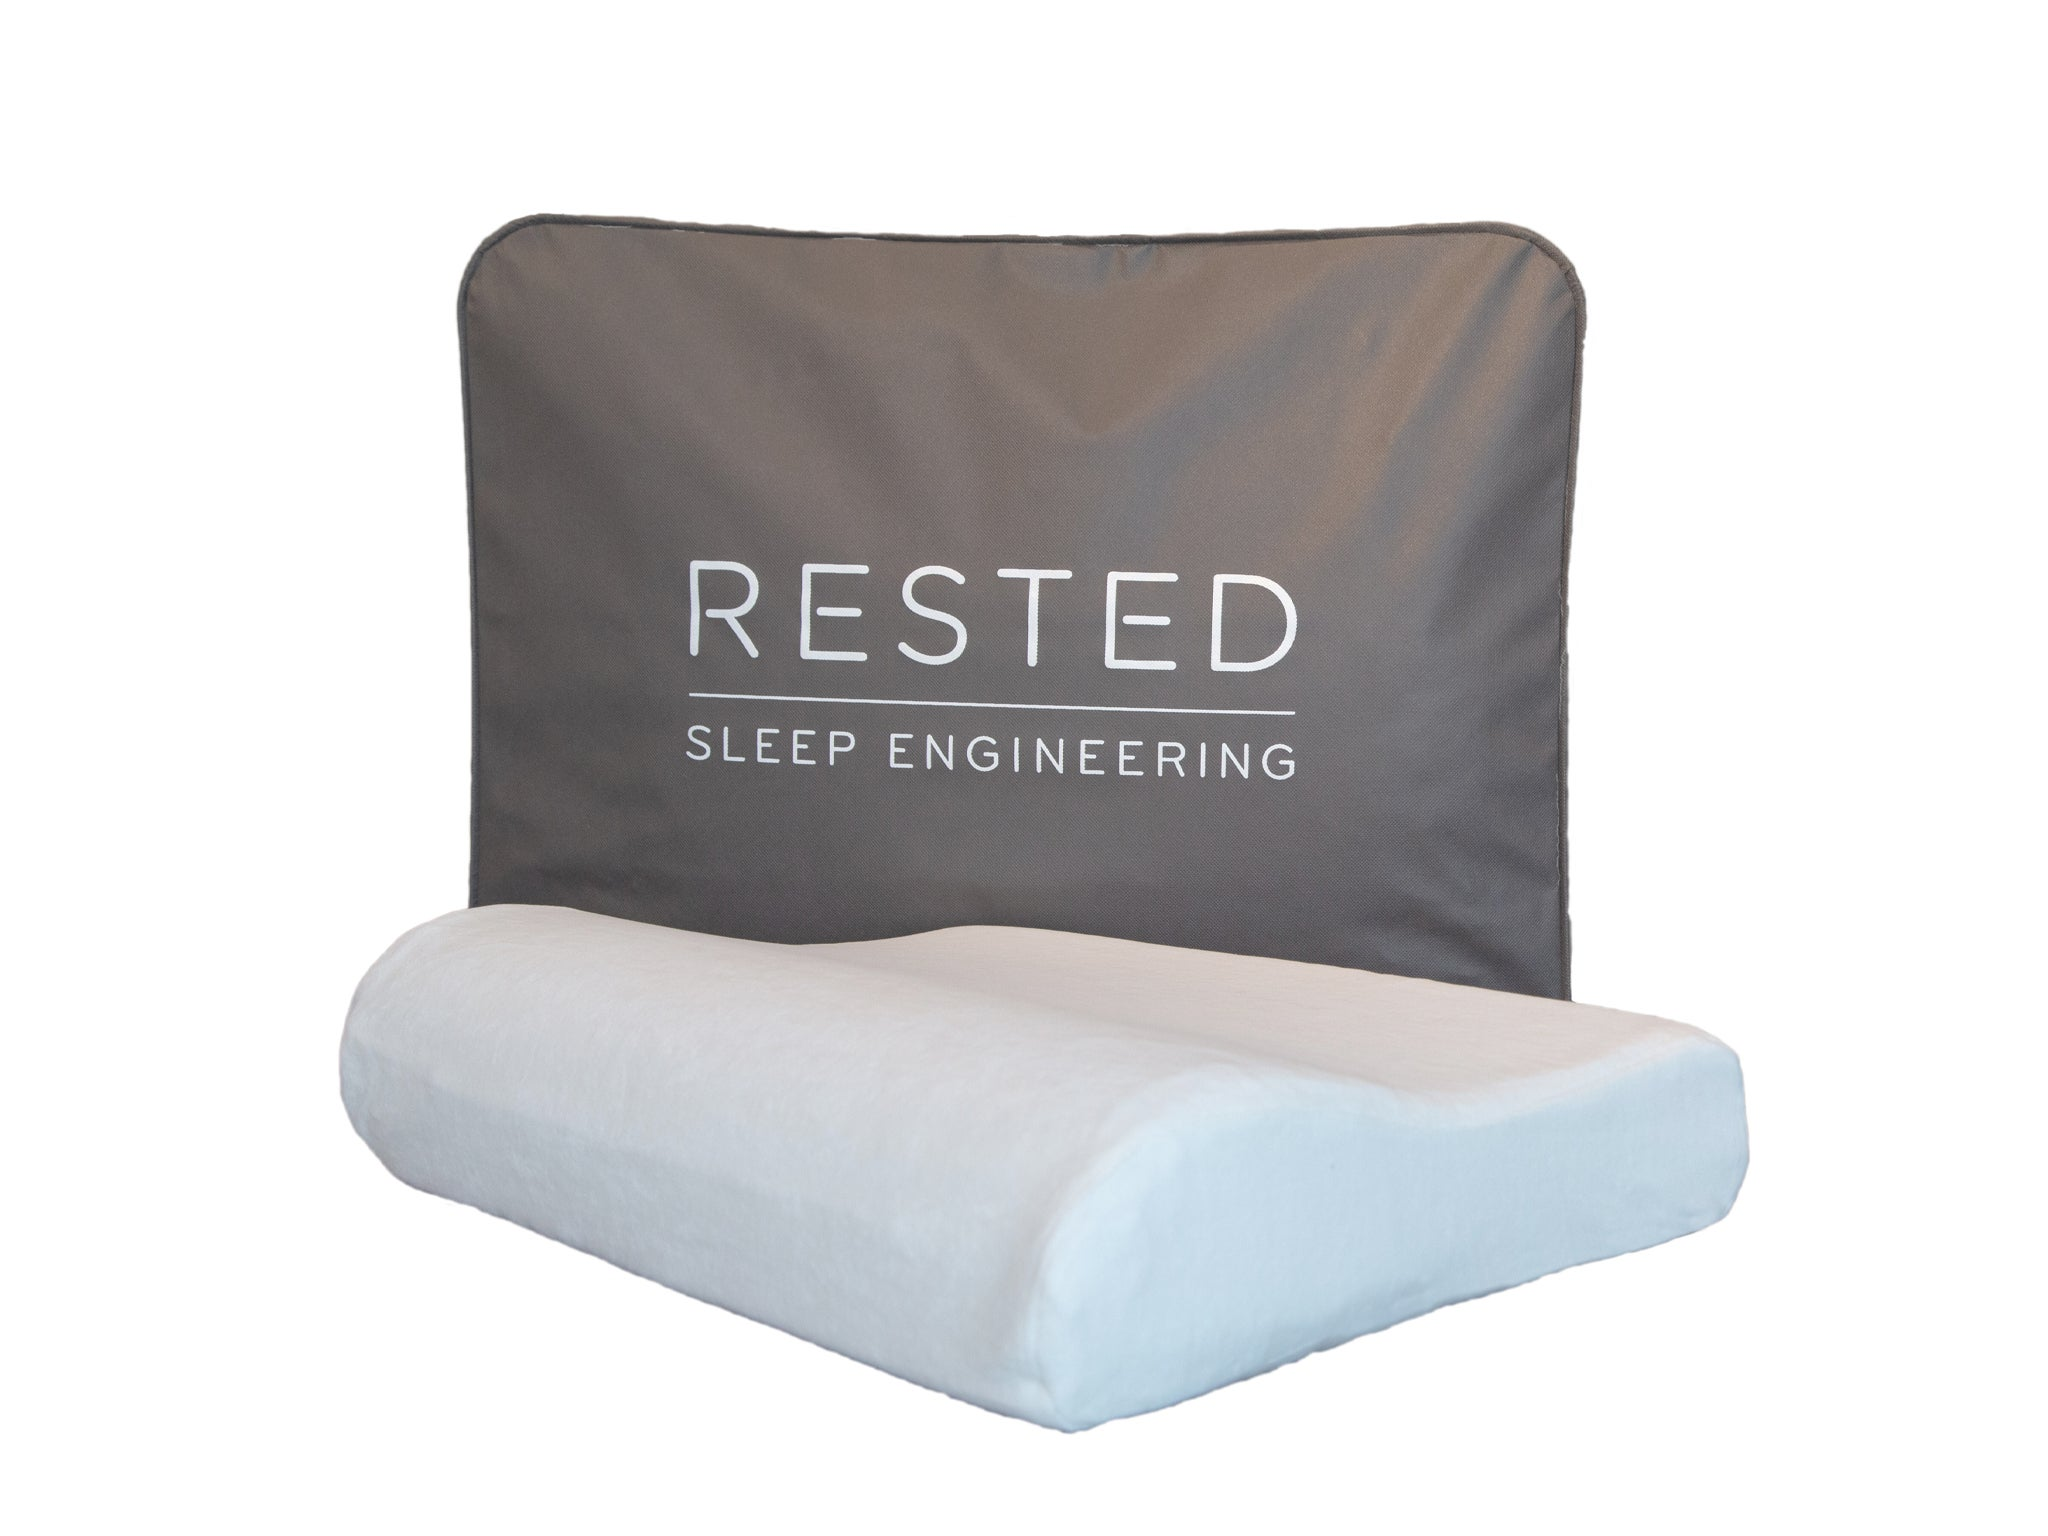 Easycomfort Memory Foam Pillow – Simply